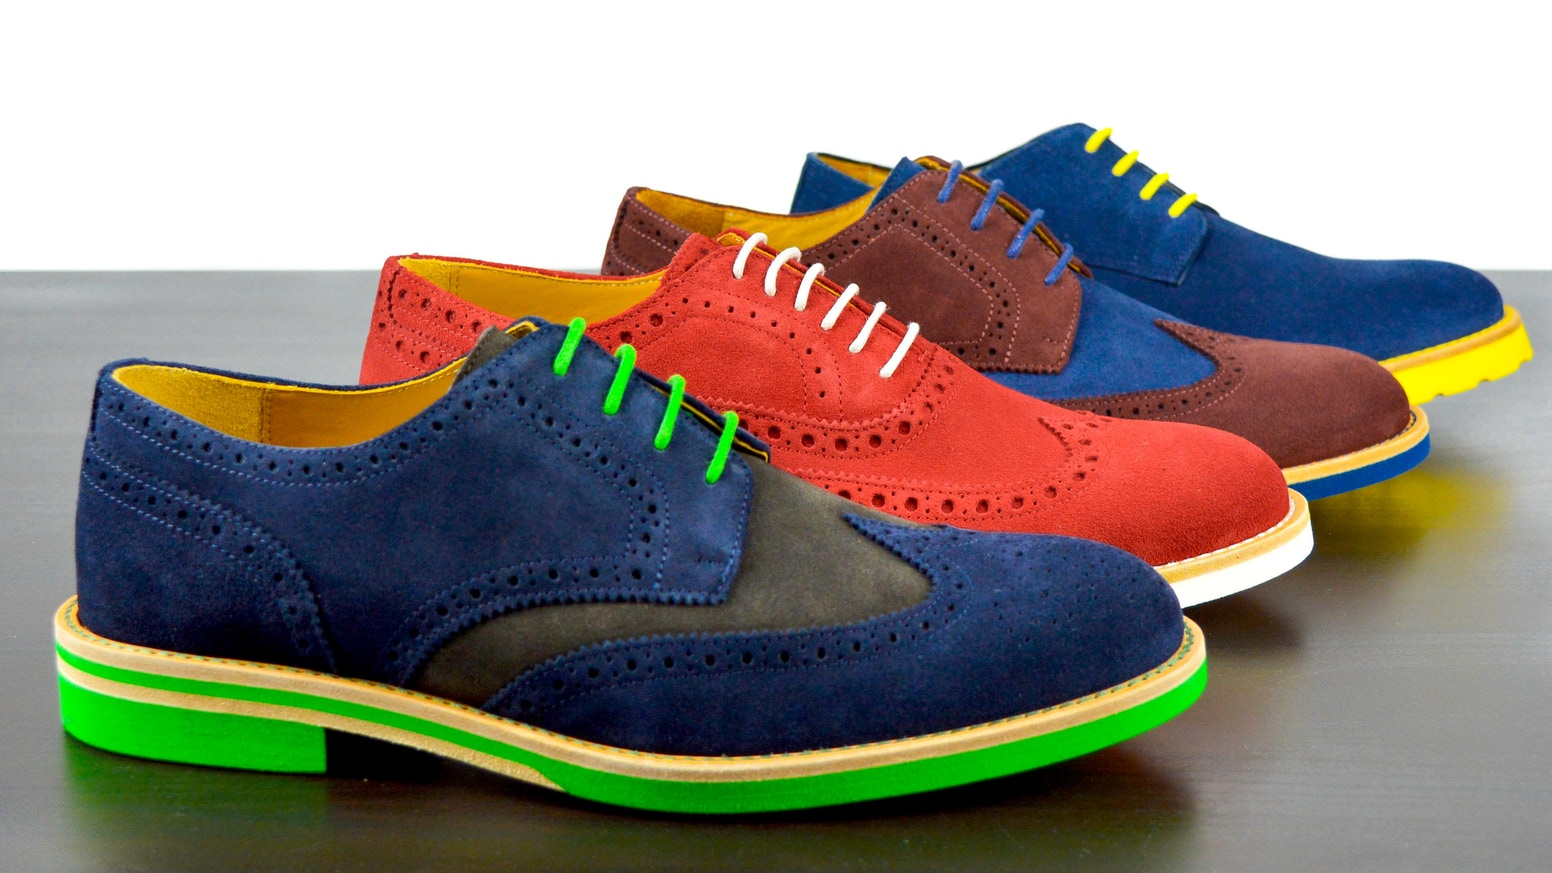 41fcb2fef2561 Express your personality and stand out from the crowd with classic dress  shoes reimagined with bursts